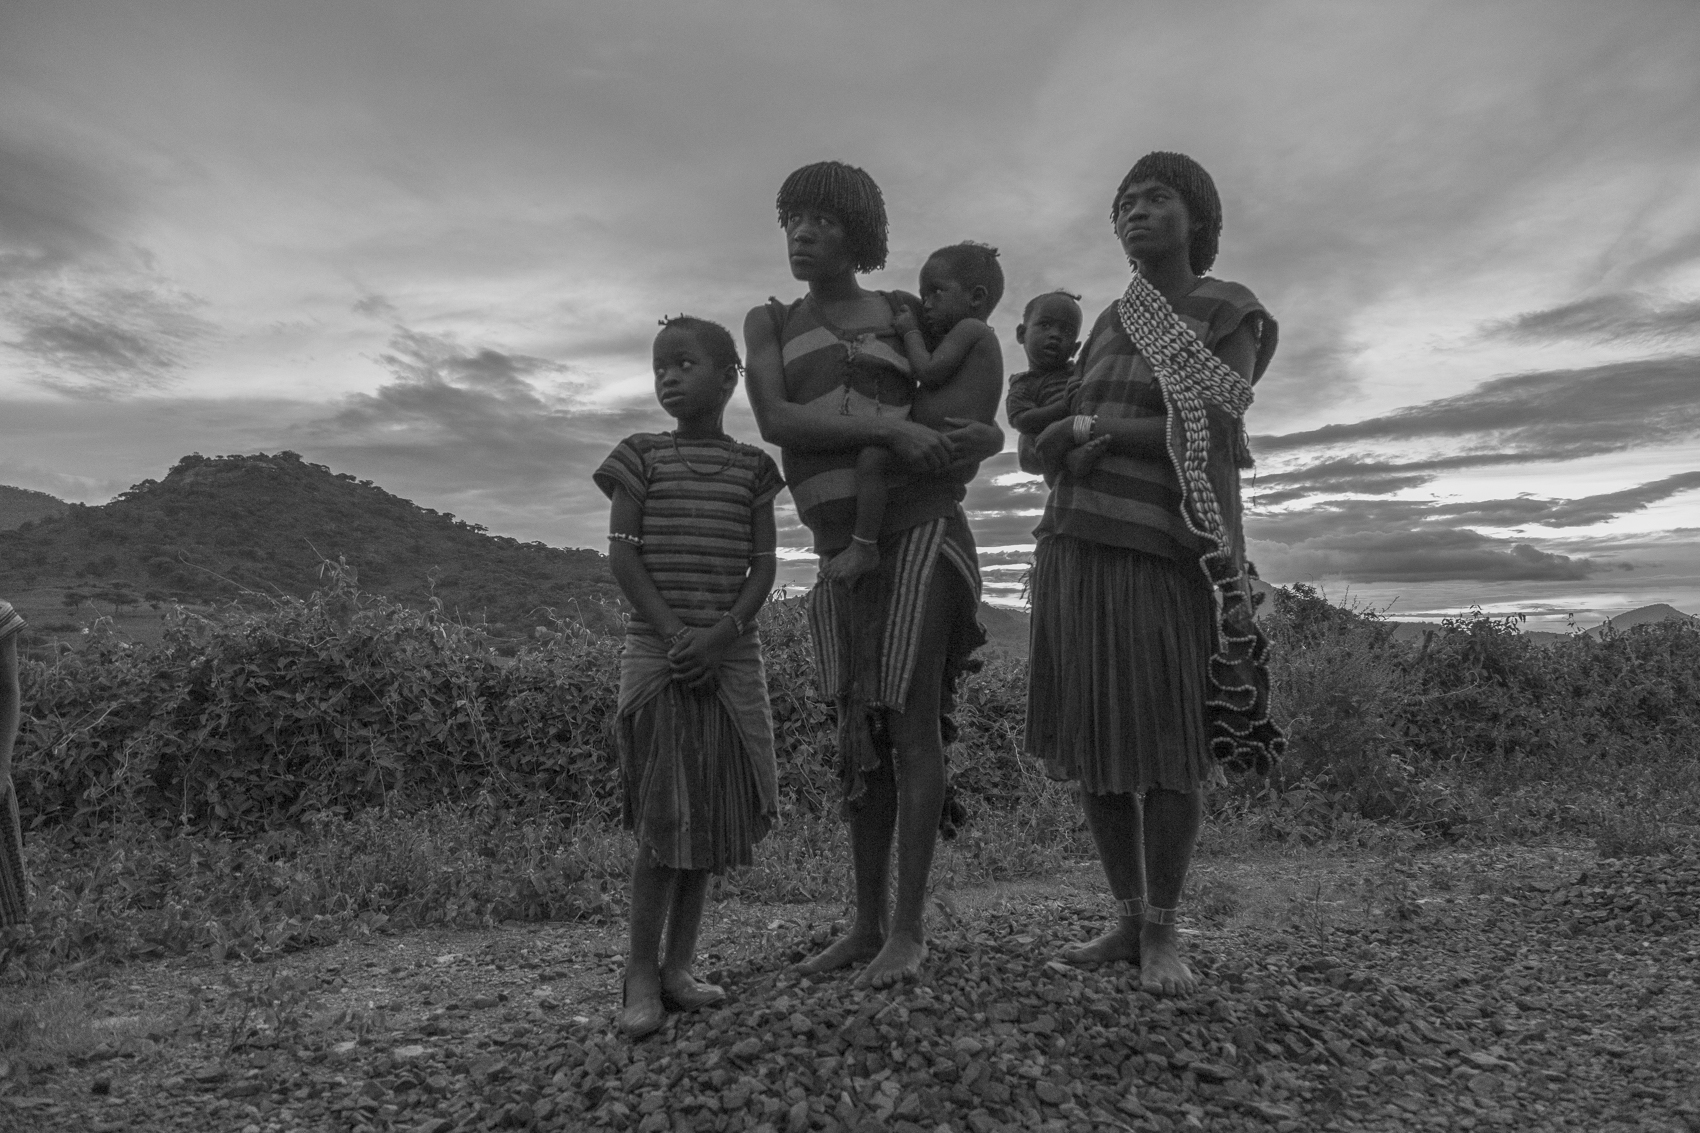 Konso women and their children